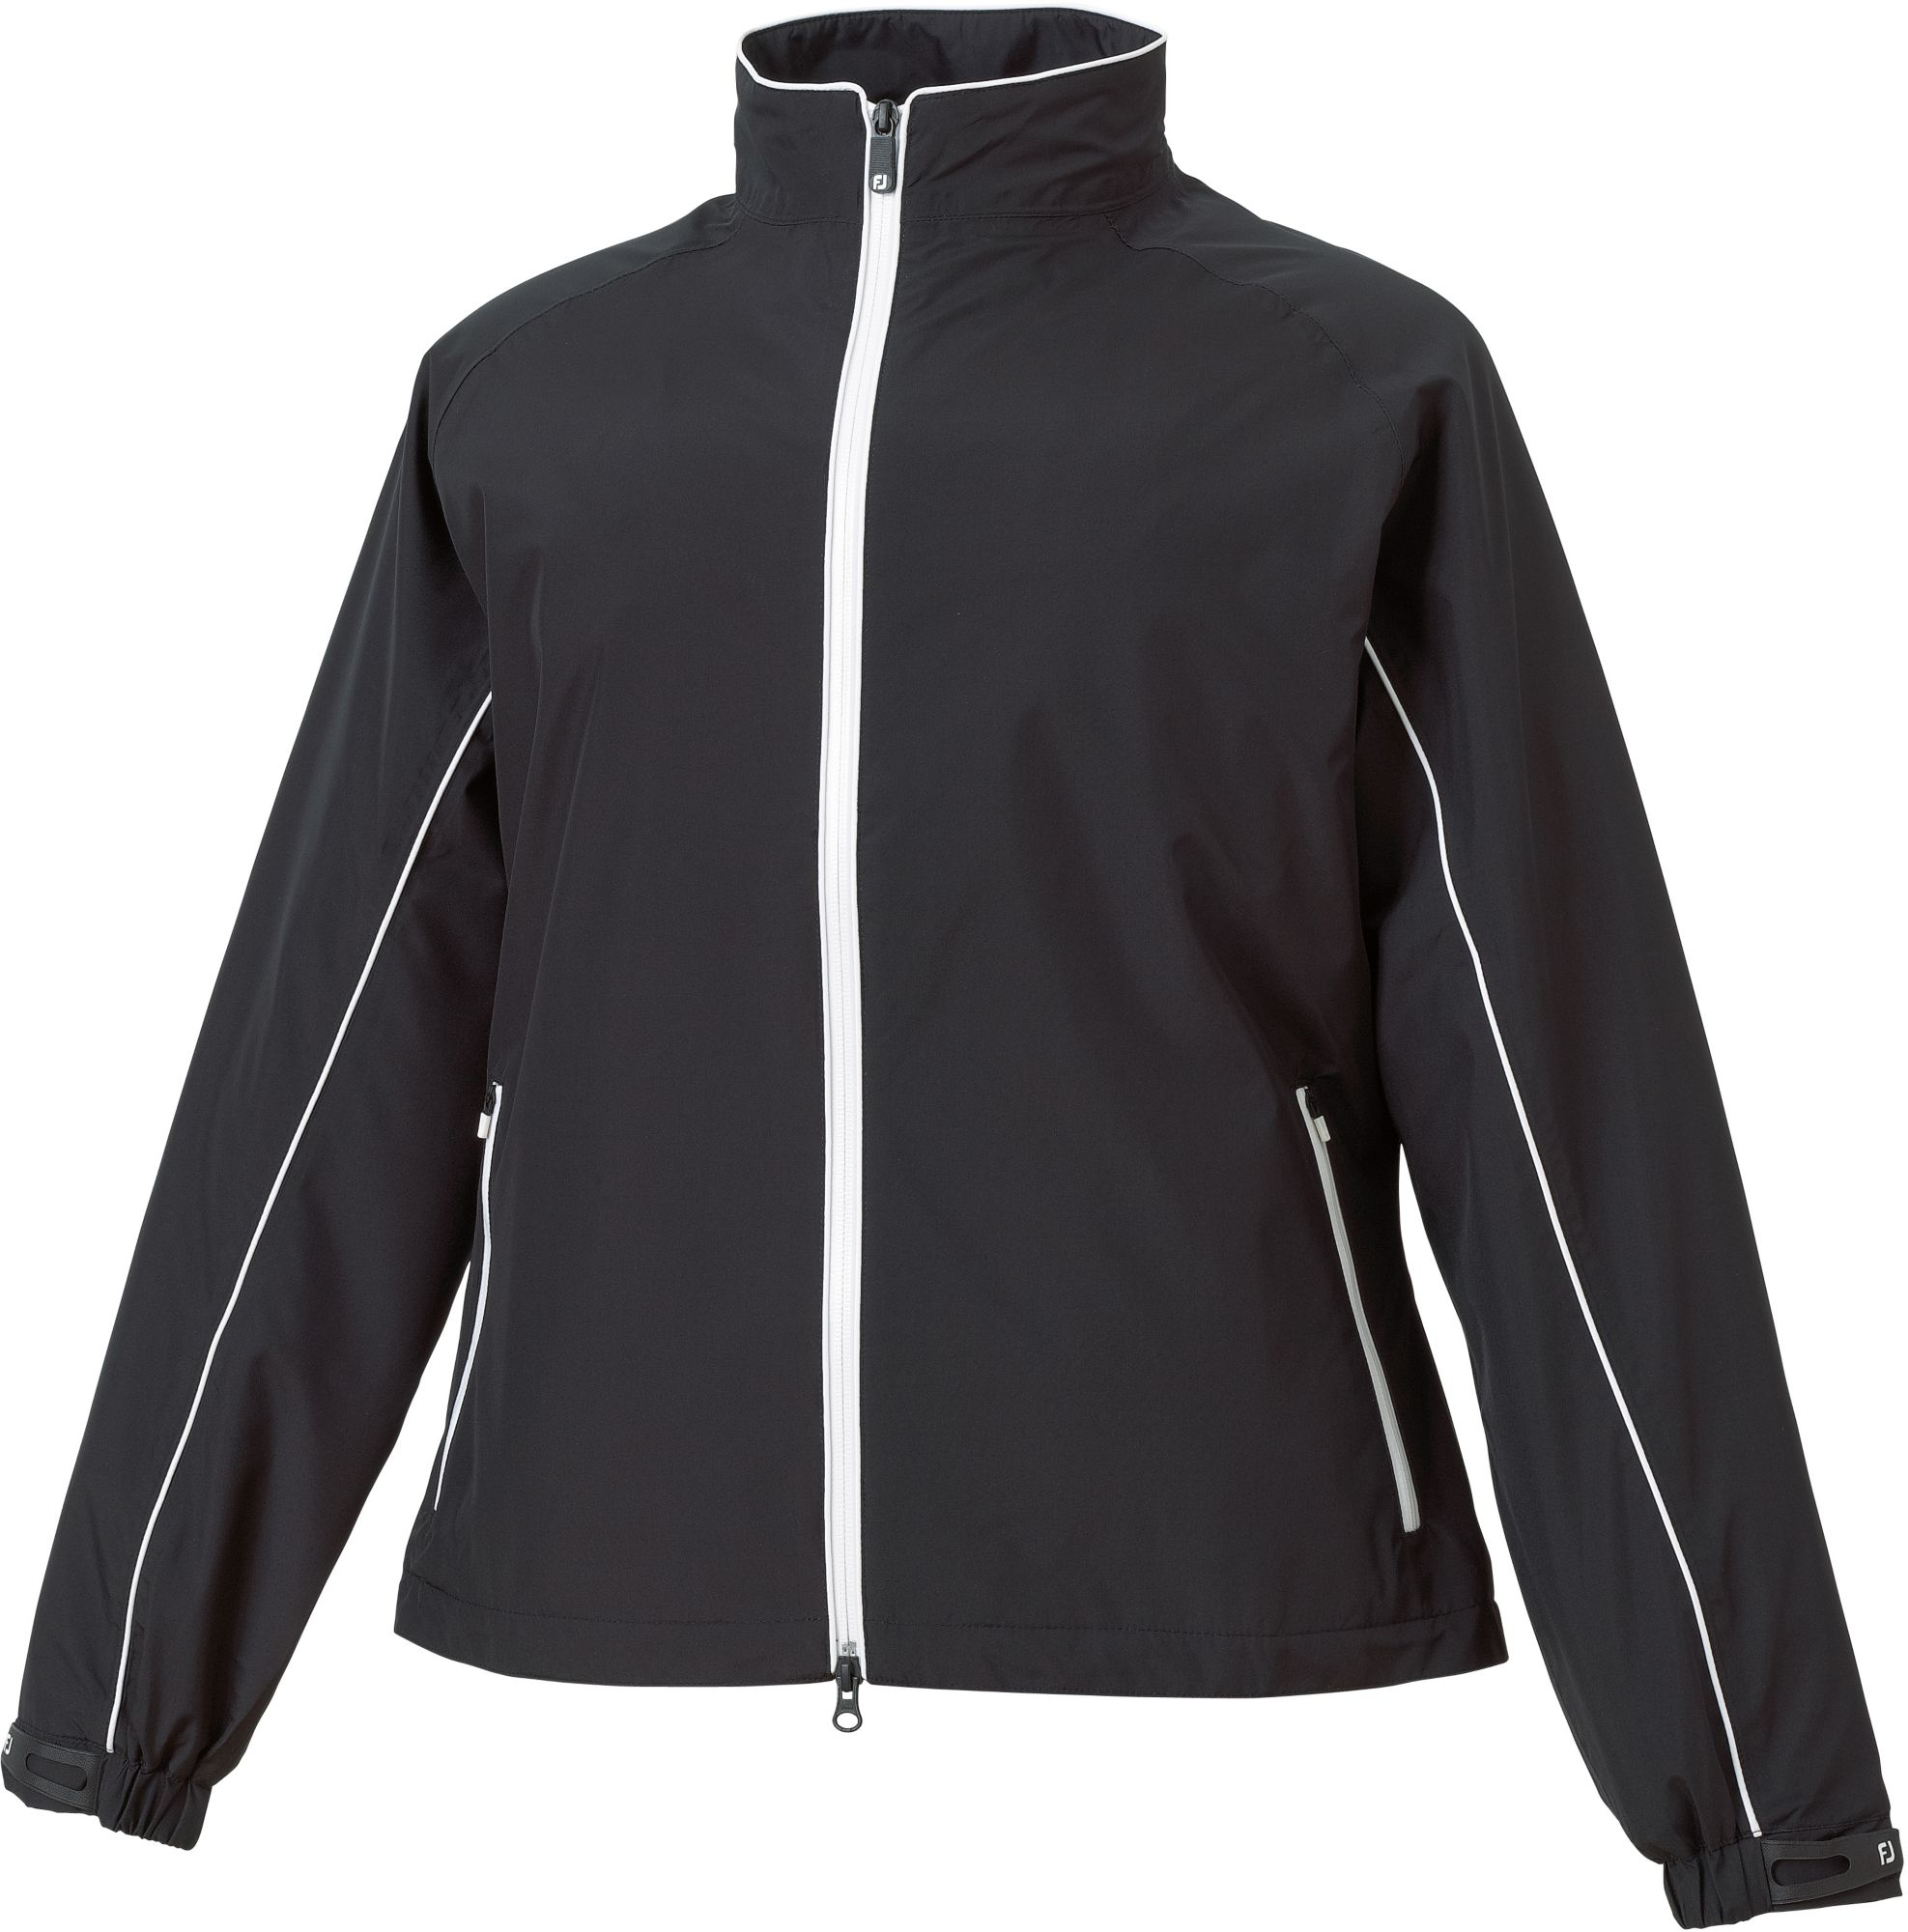 FootJoy Women's DryJoy Performance Light Jacket